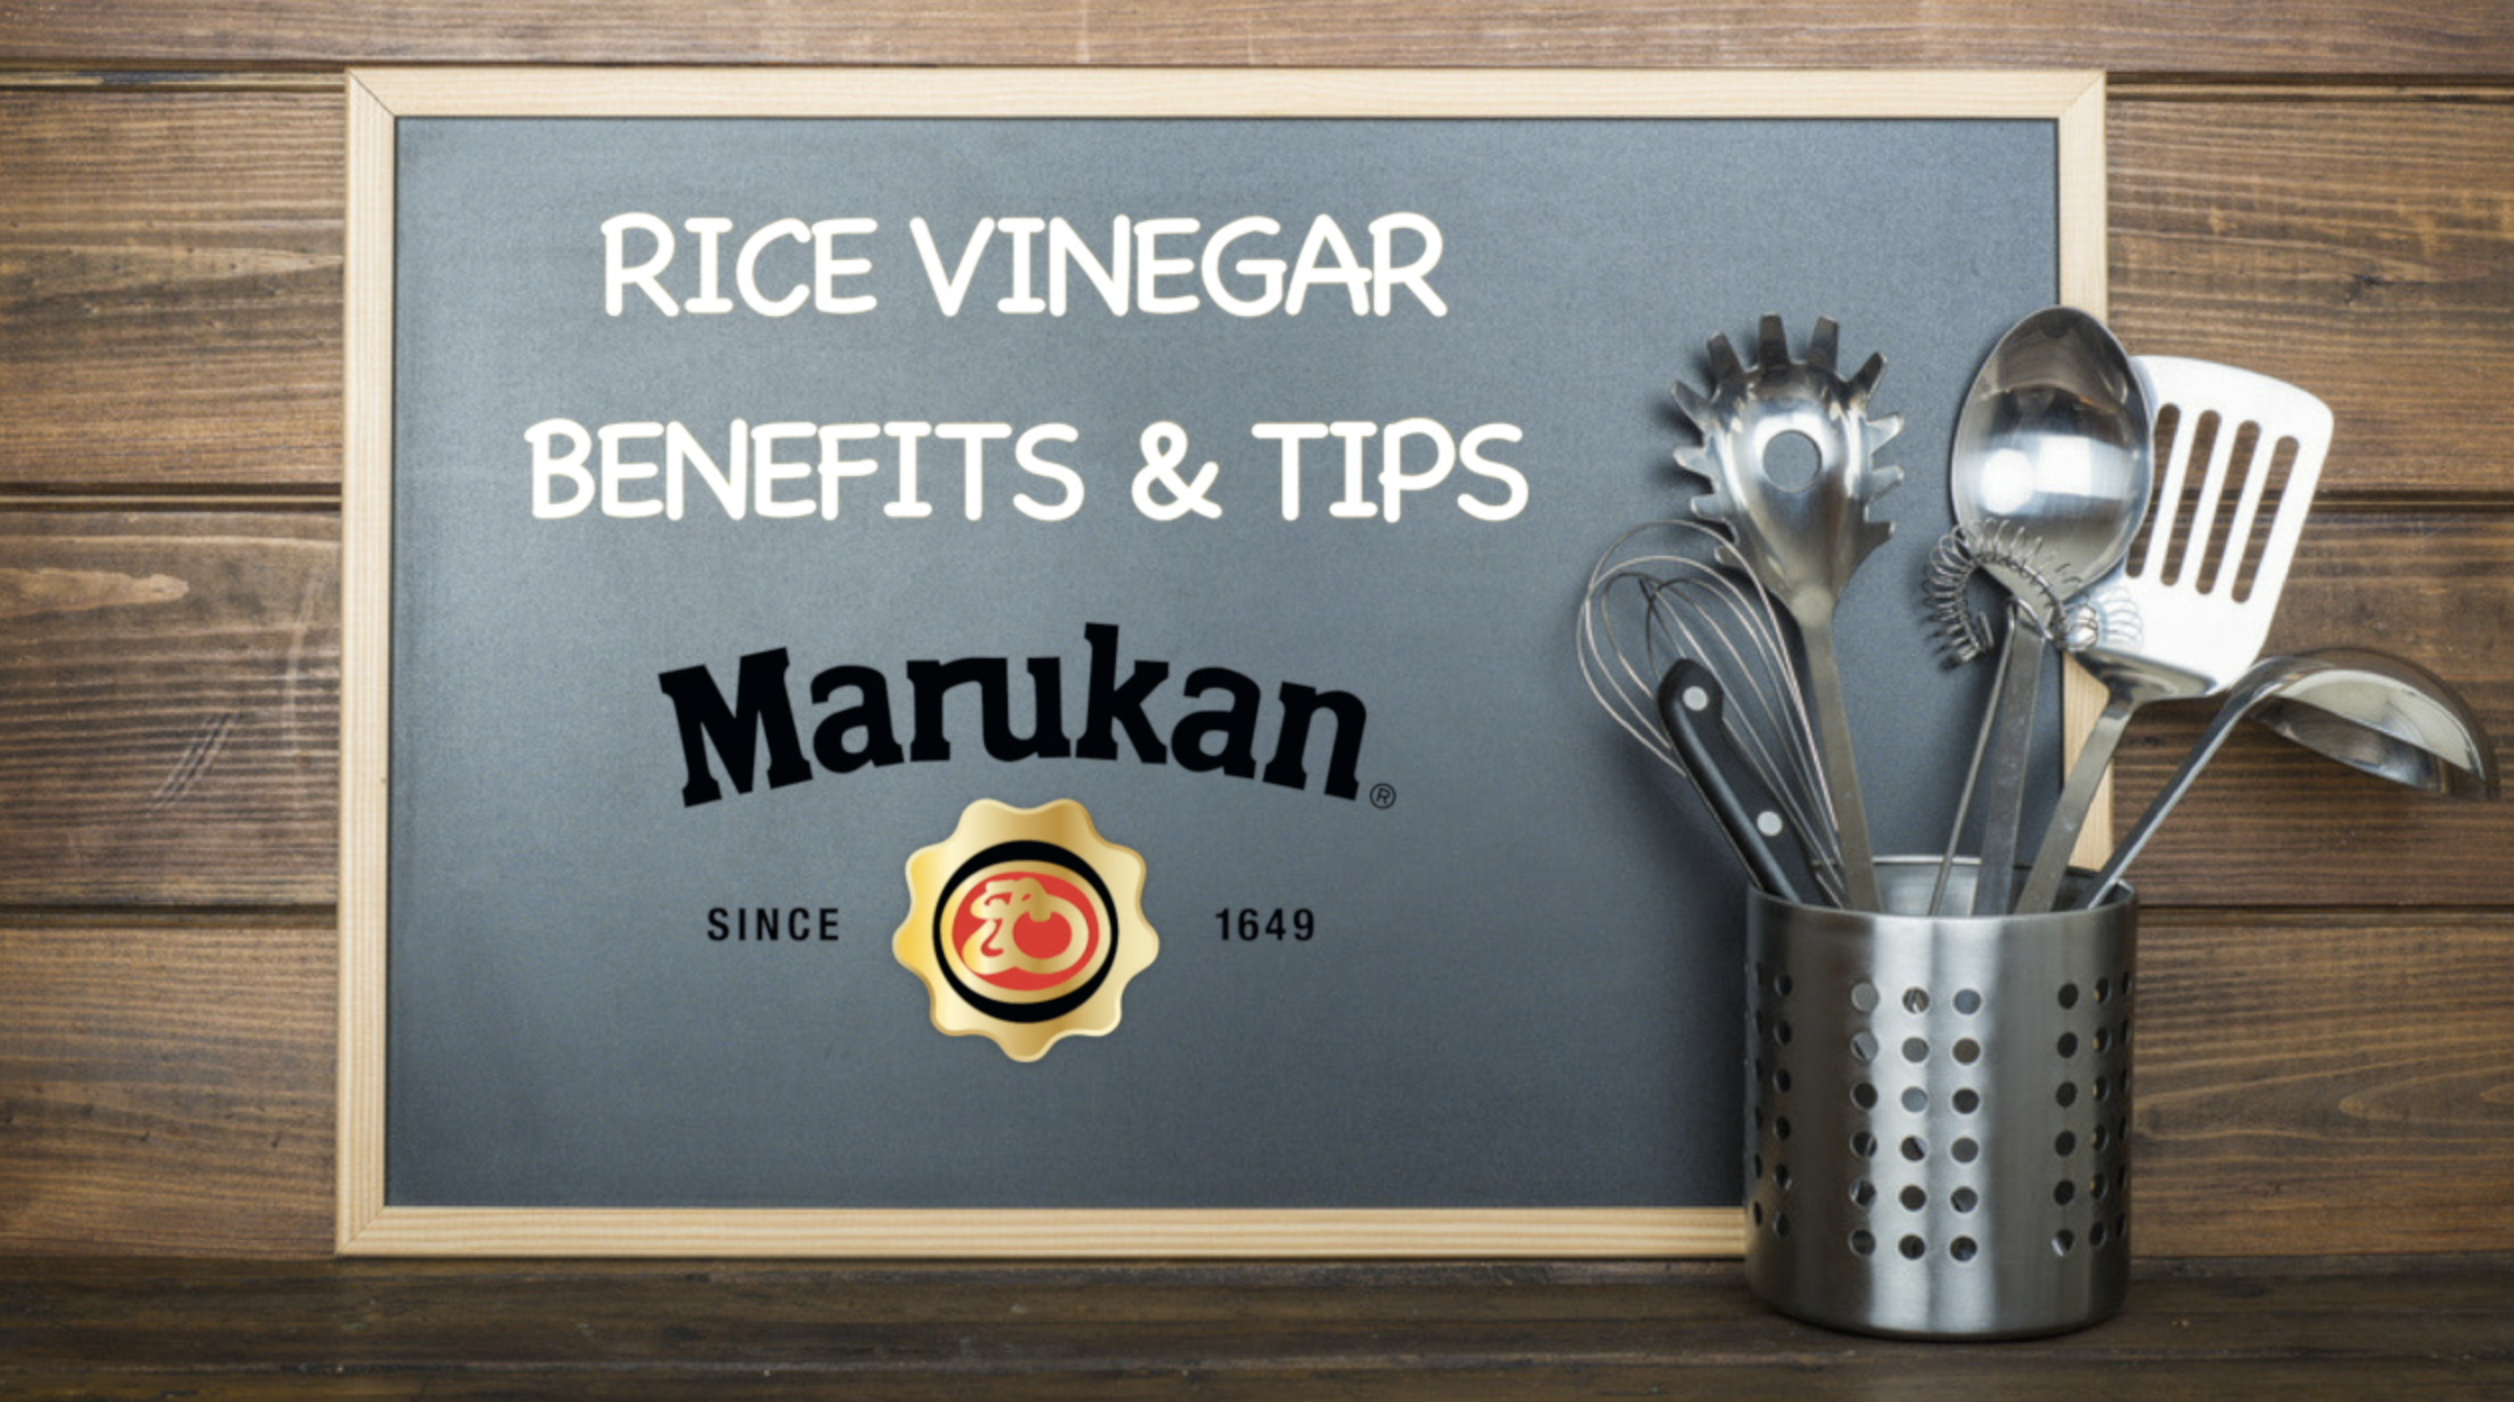 Rice Vinegar Benefits and Usage Tips